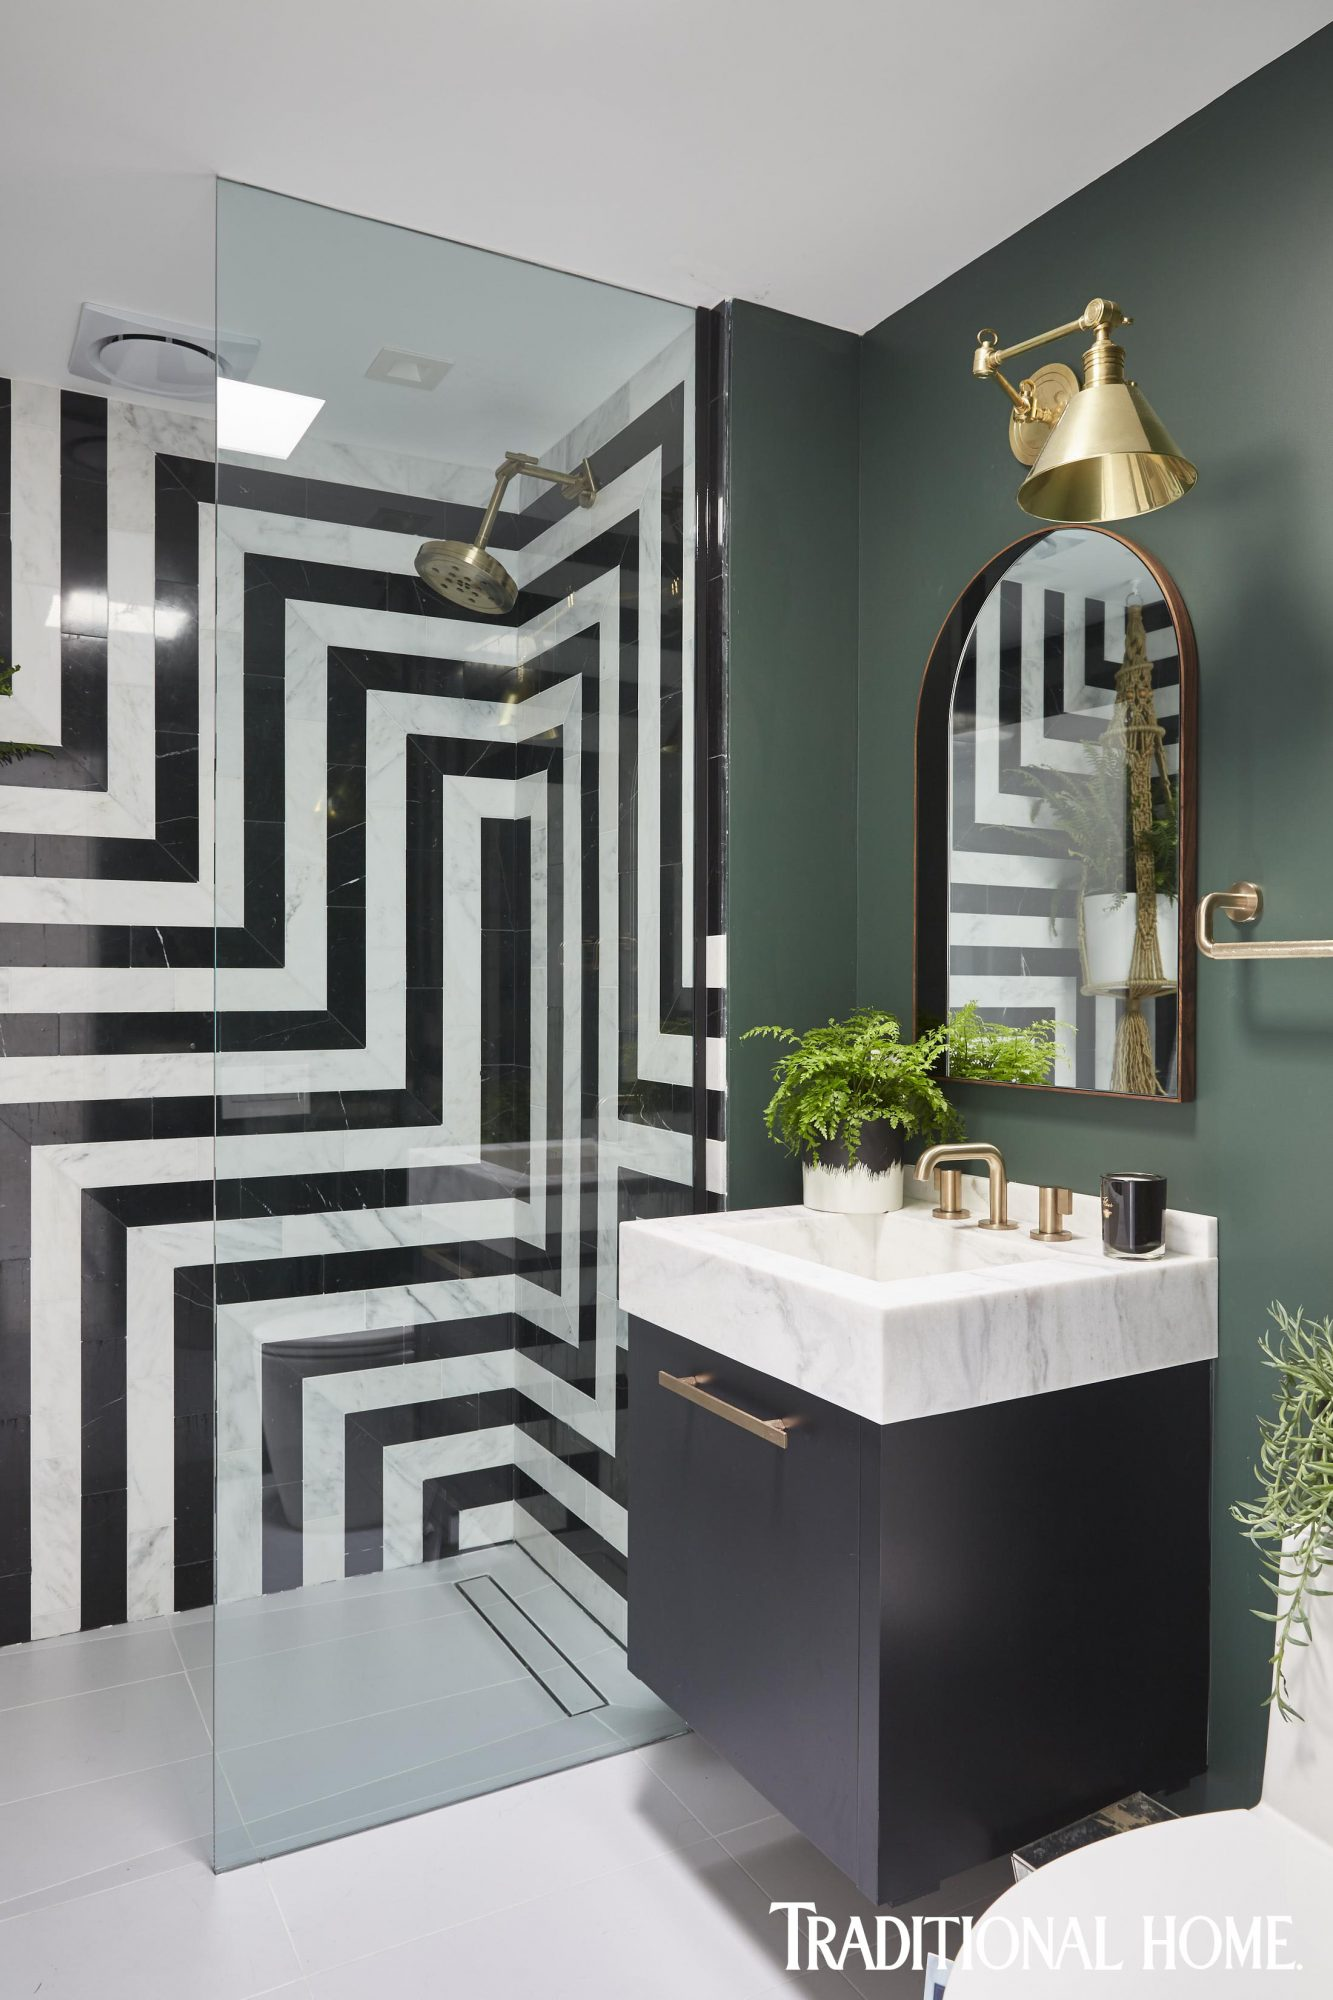 midcentury modern bathroom with black dragon tile backsplash